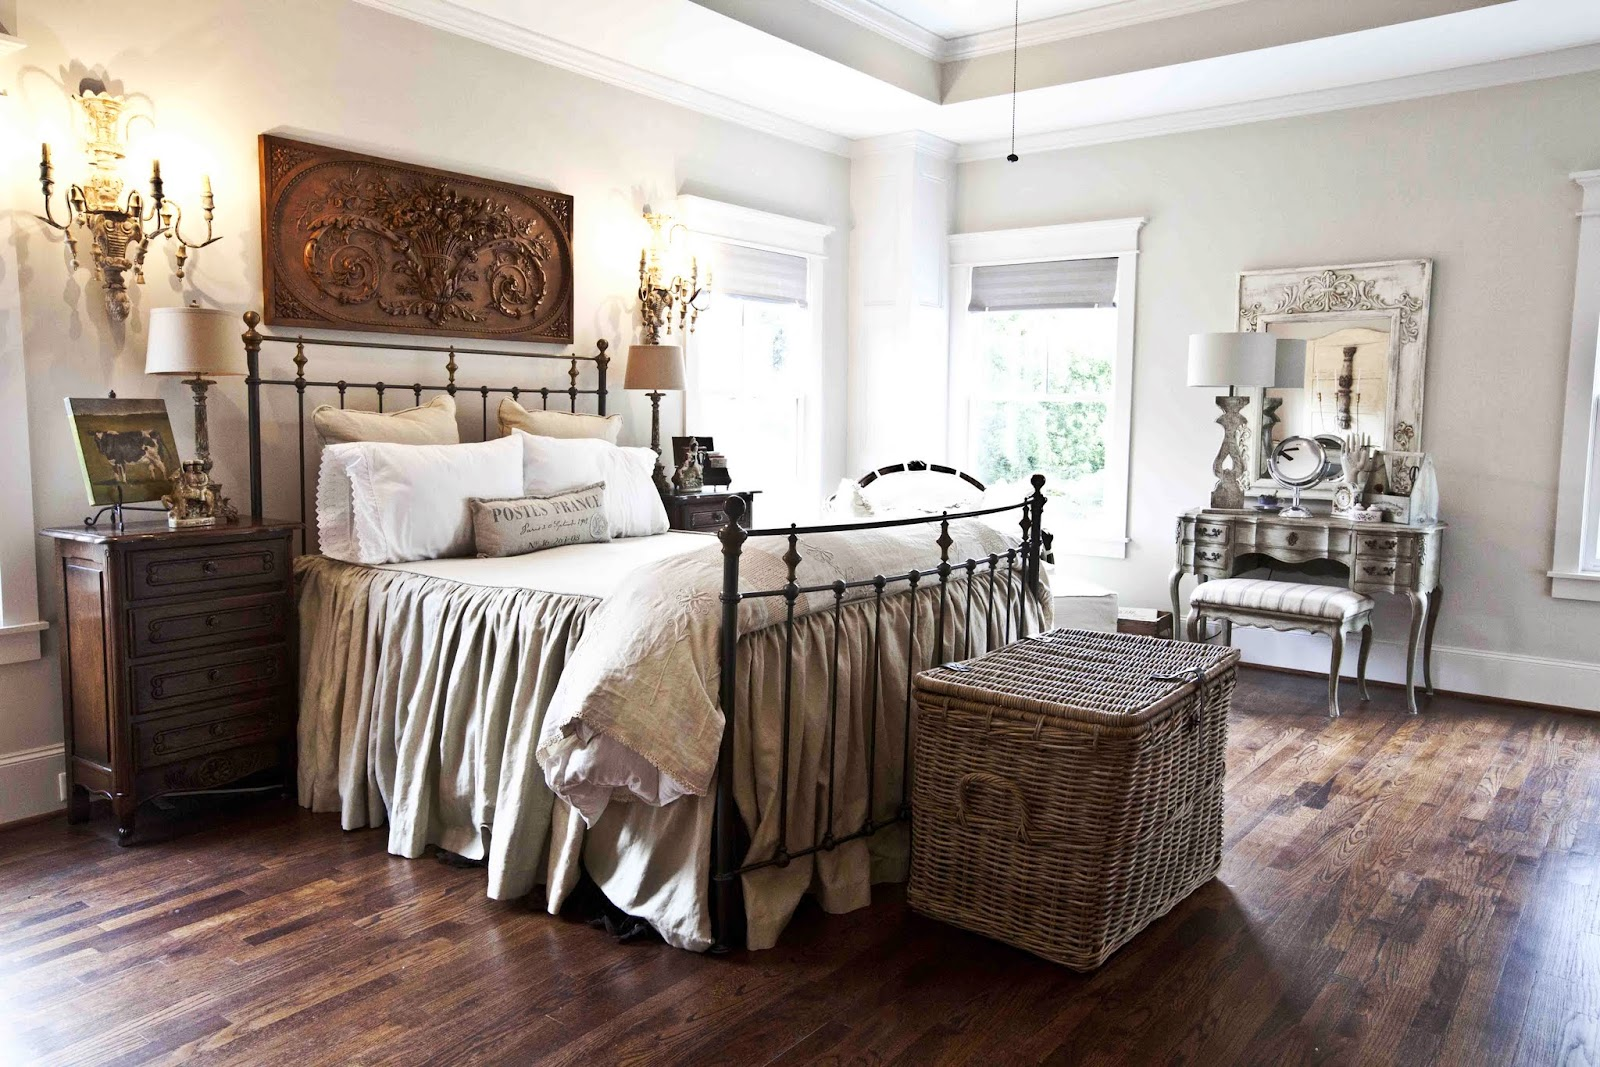 Farmhouse Bedroom Decor Ideas: Finally!!! The New House